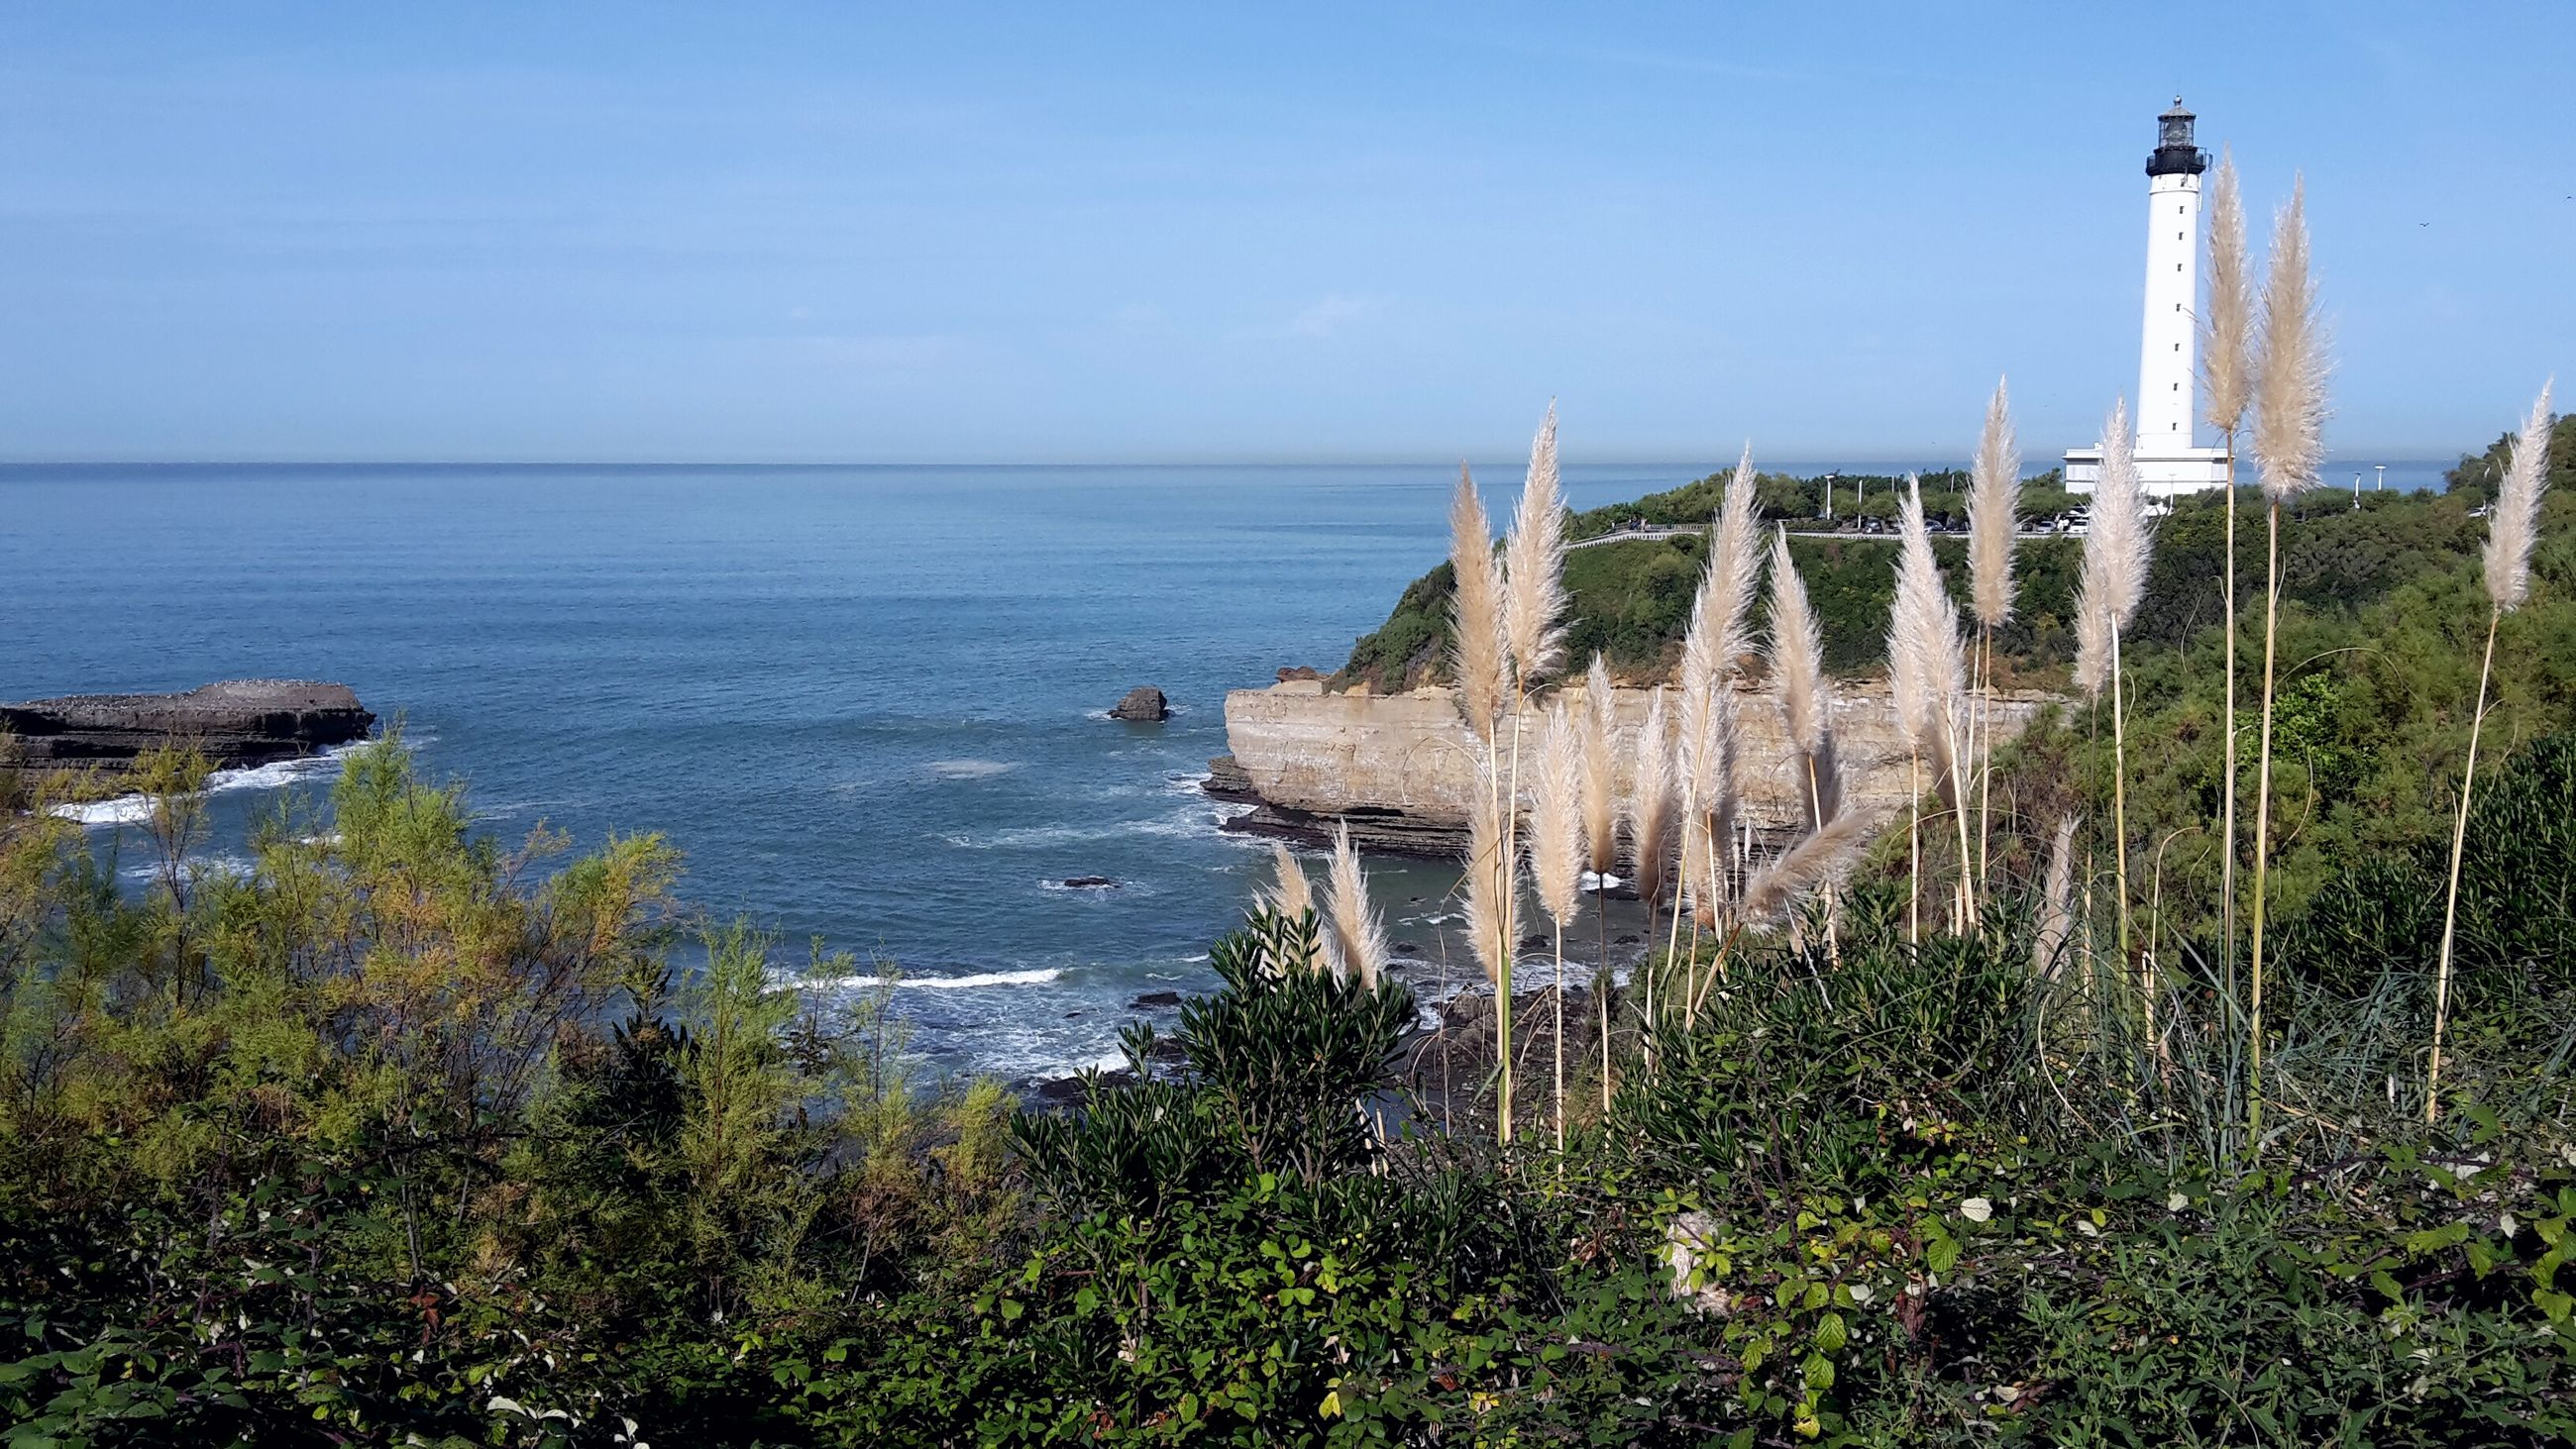 sea, horizon over water, water, tranquility, tranquil scene, scenics, clear sky, nature, plant, blue, beauty in nature, grass, sky, built structure, beach, growth, day, outdoors, architecture, no people